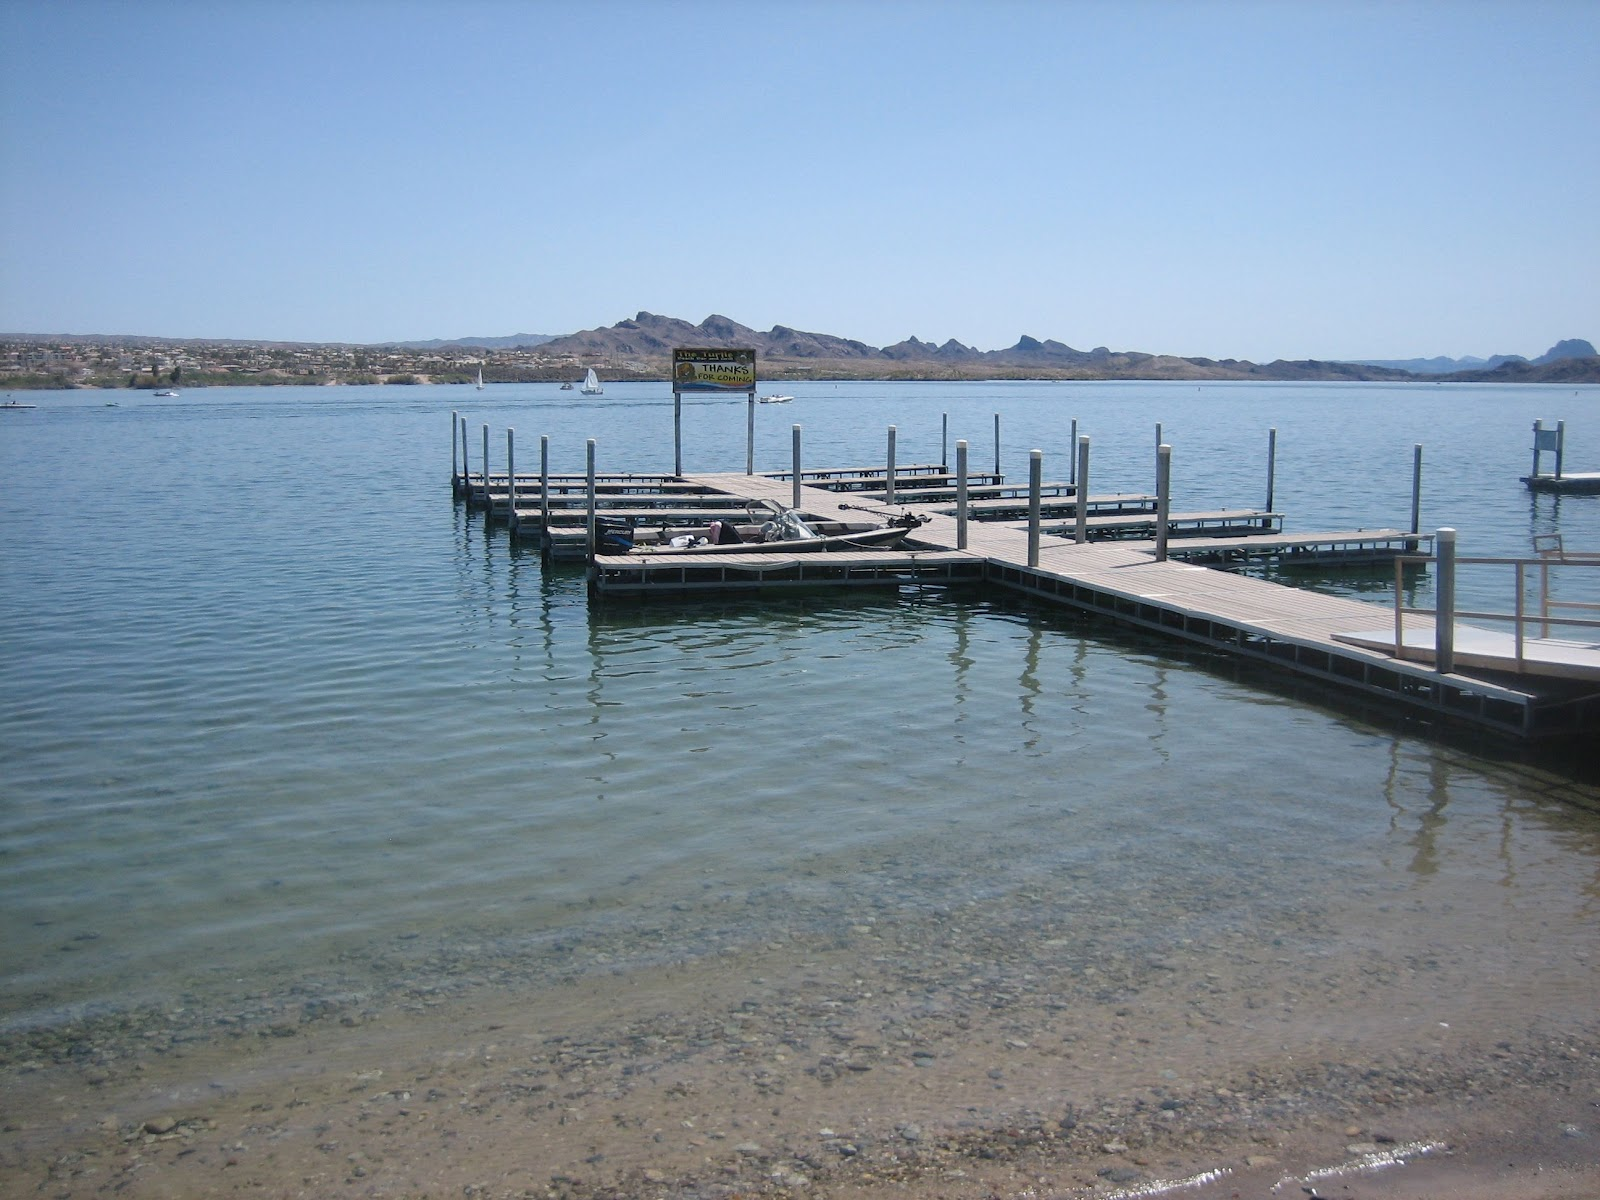 Life Made Beautiful Day Of Rest At Lake Havasu With -2151